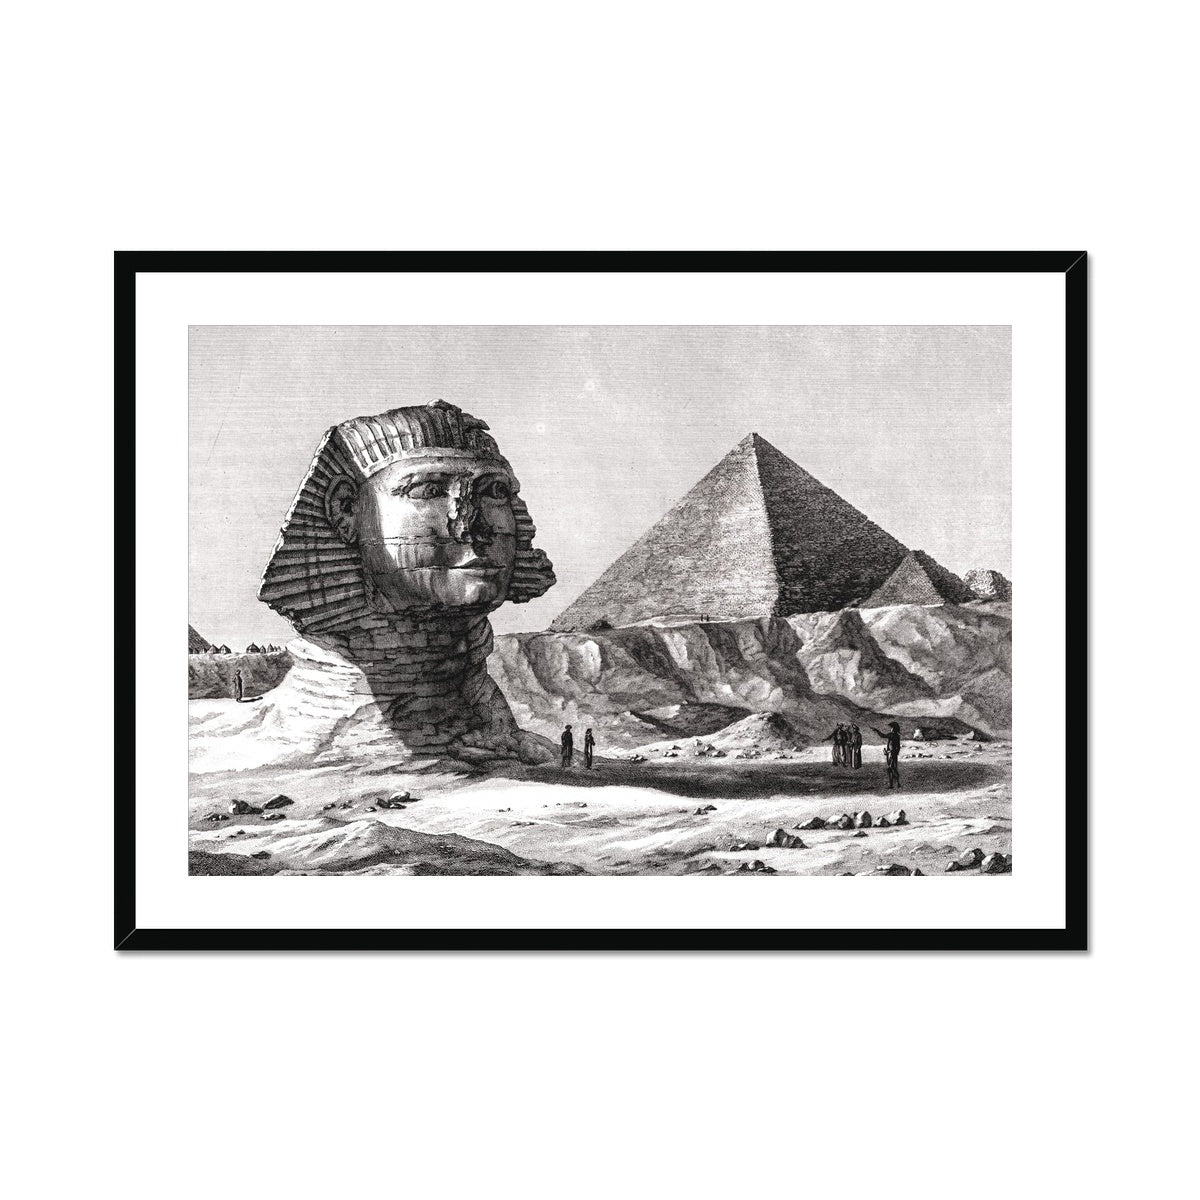 View of the Sphinx - Memphis Egypt -  Framed & Mounted Print